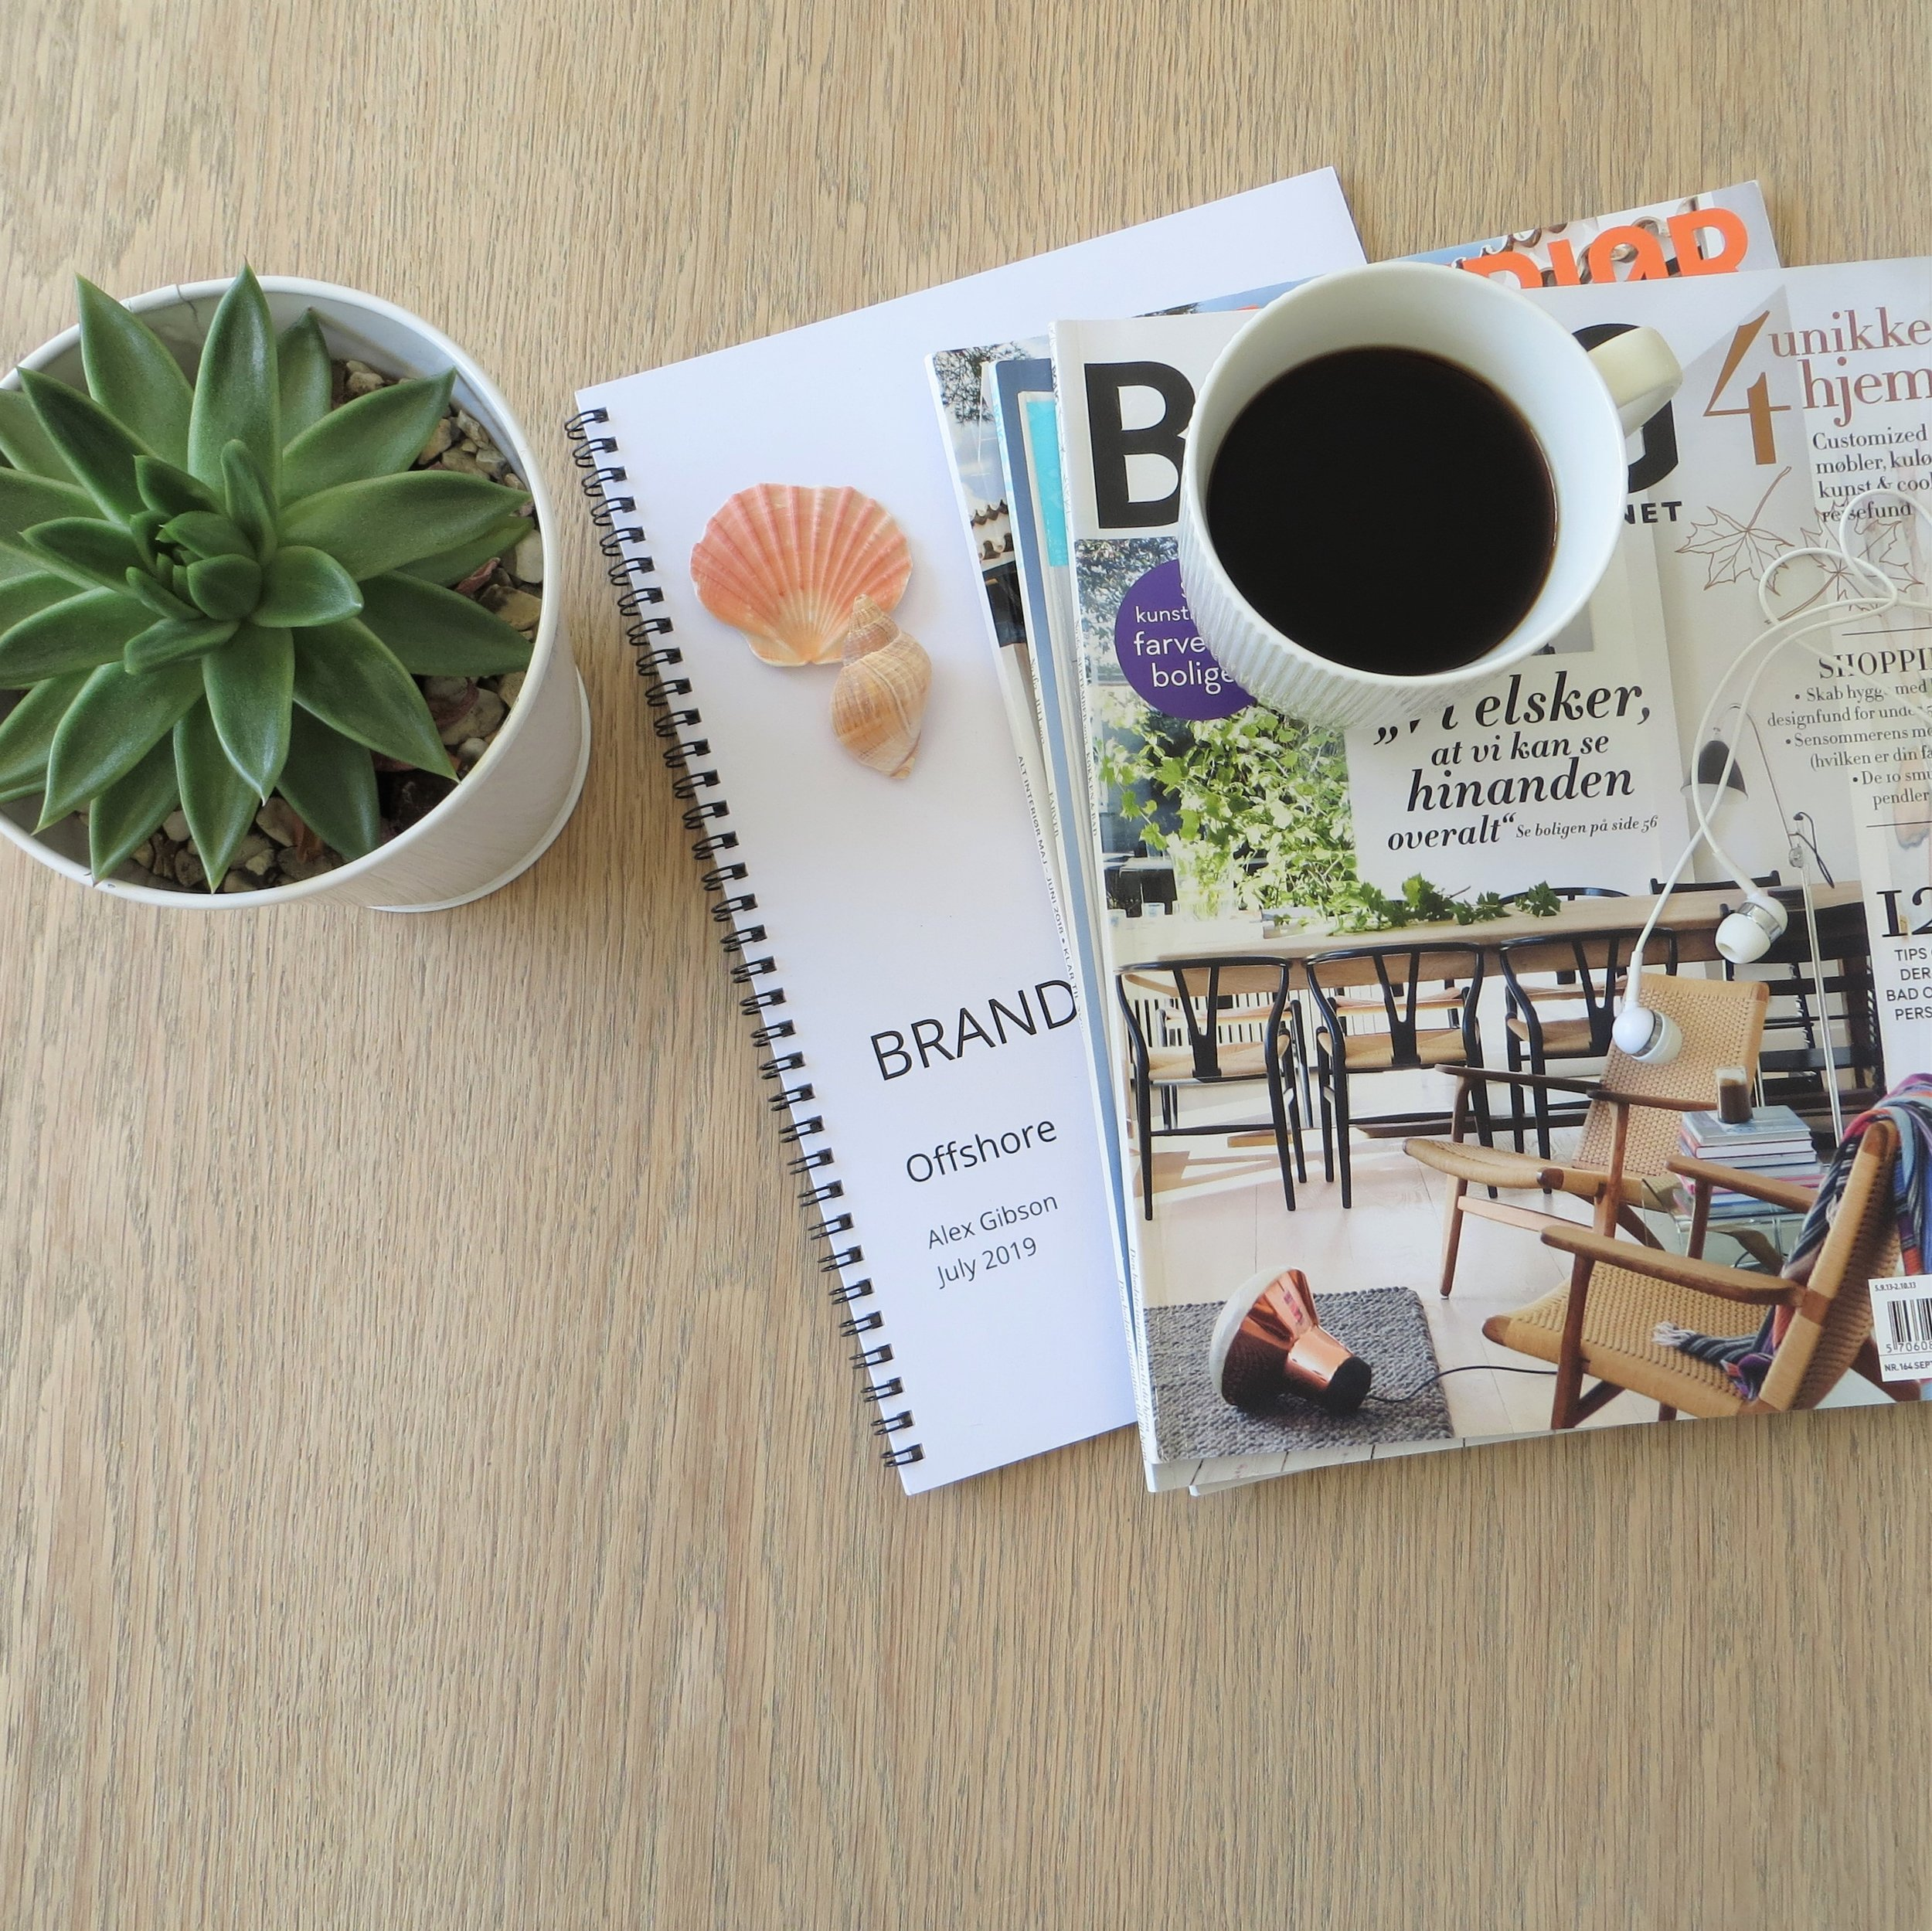 What if your brand was a magazine, what features would it have?